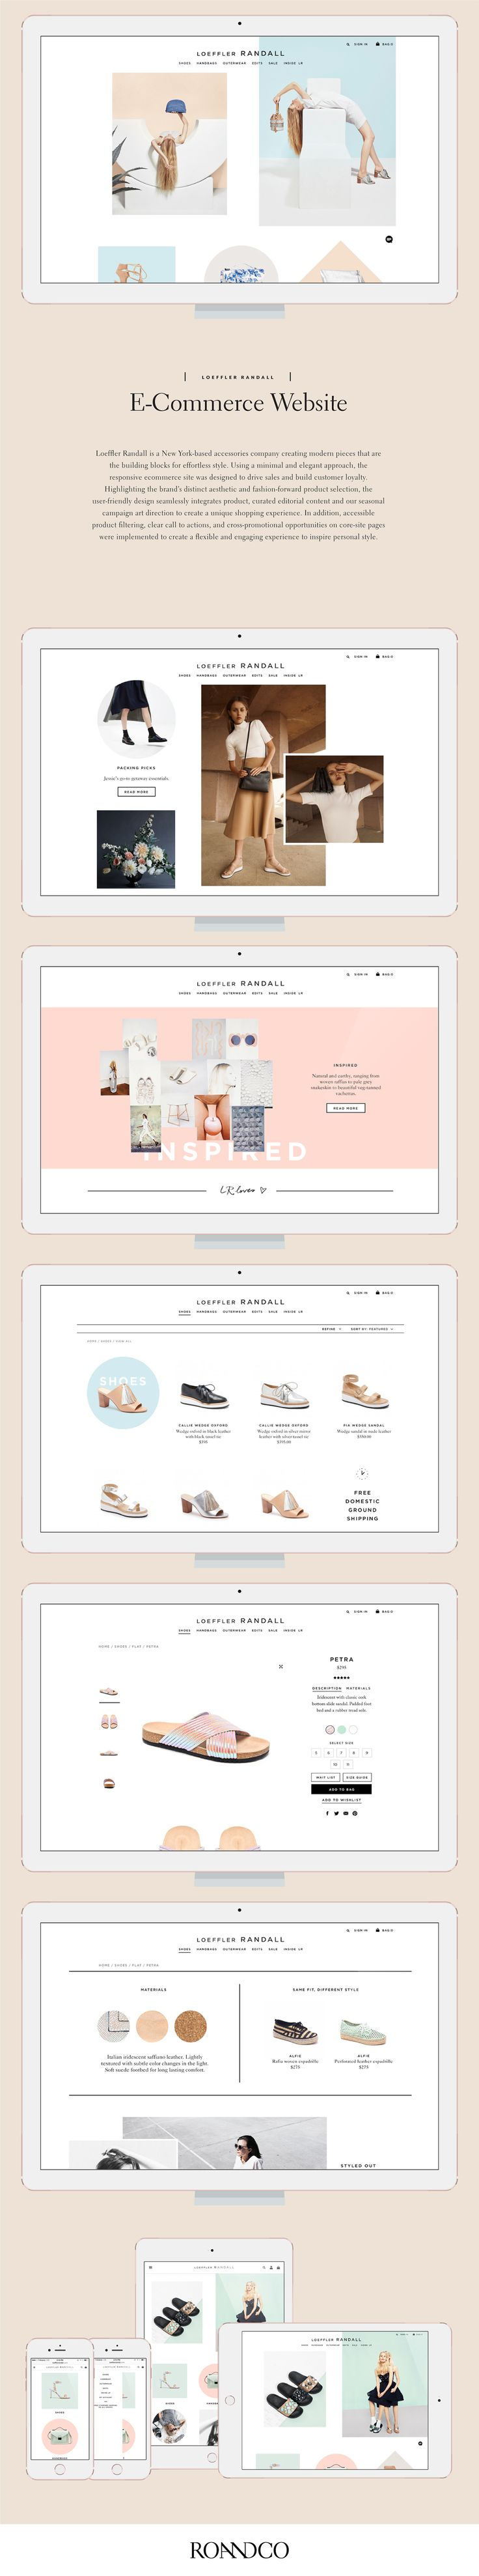 Loeffler Randall is a New York-based accessories company creating modern pieces that are the building blocks for effortless style. Using a minimal and elegant approach, the responsive ecommerce site was designed to drive sales and build customer loyalty. …